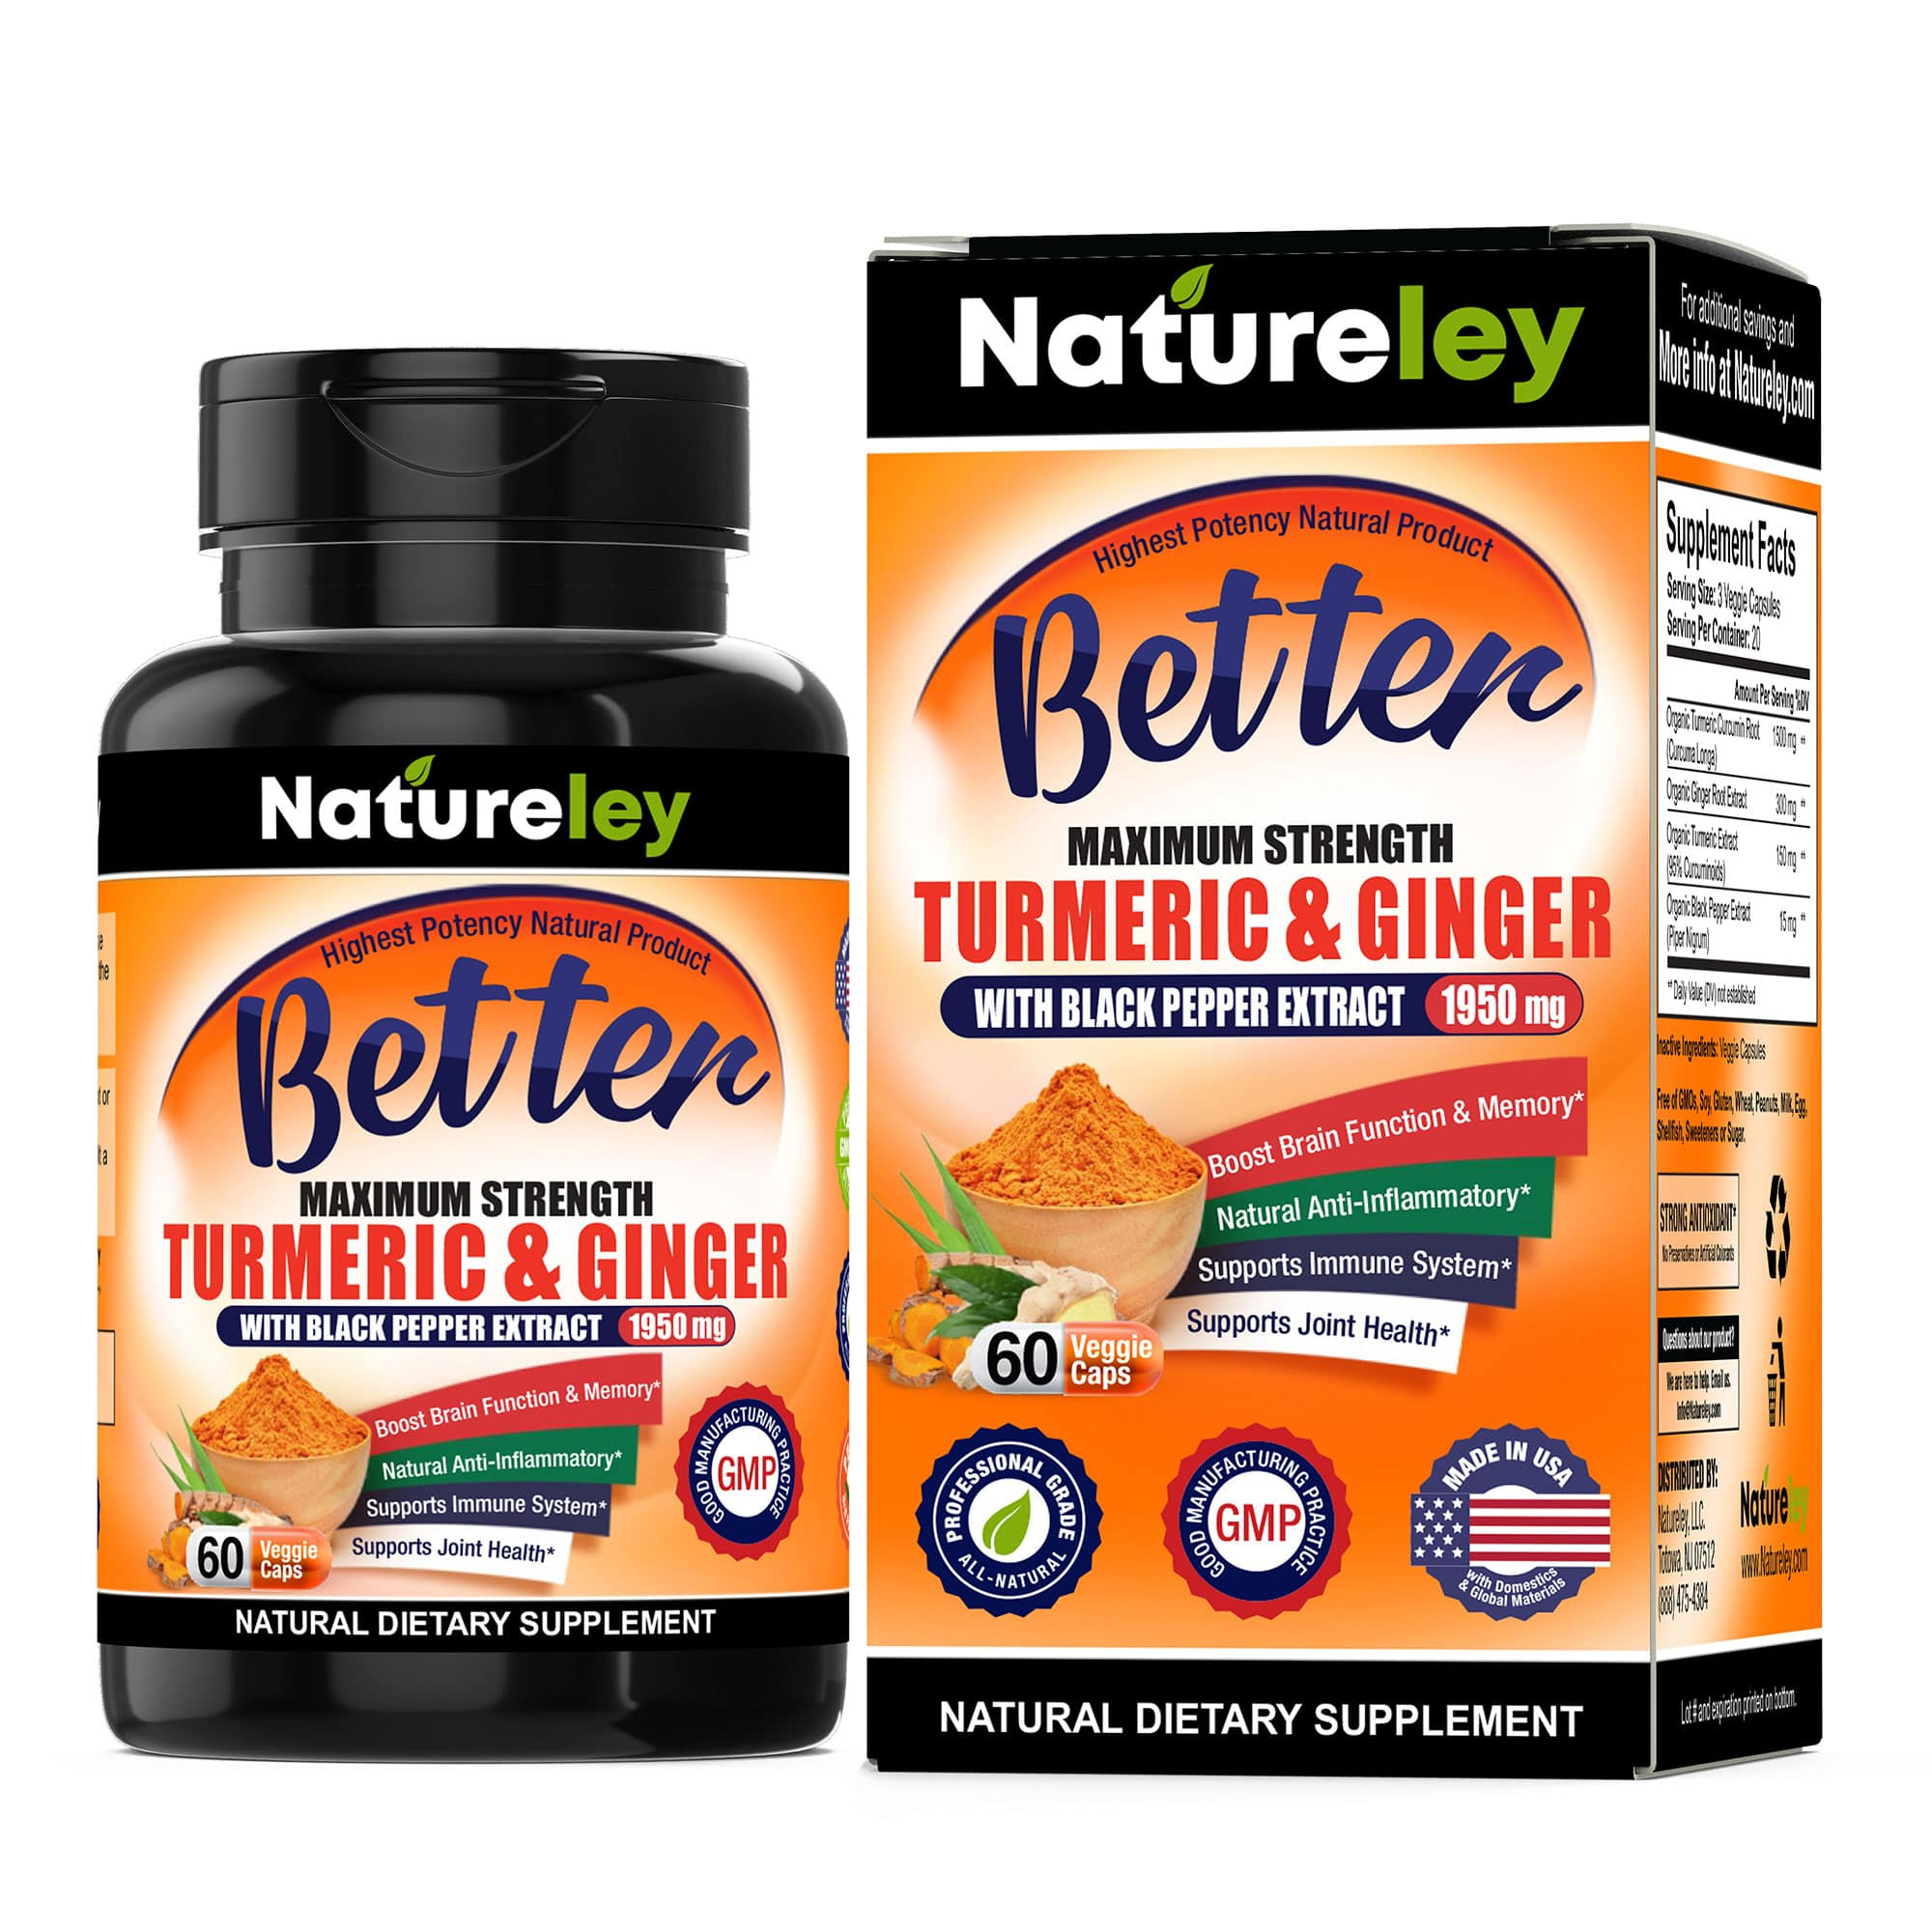 Organic Turmeric & Ginger with Black Pepper Extract - 1950 mg 60 Caps